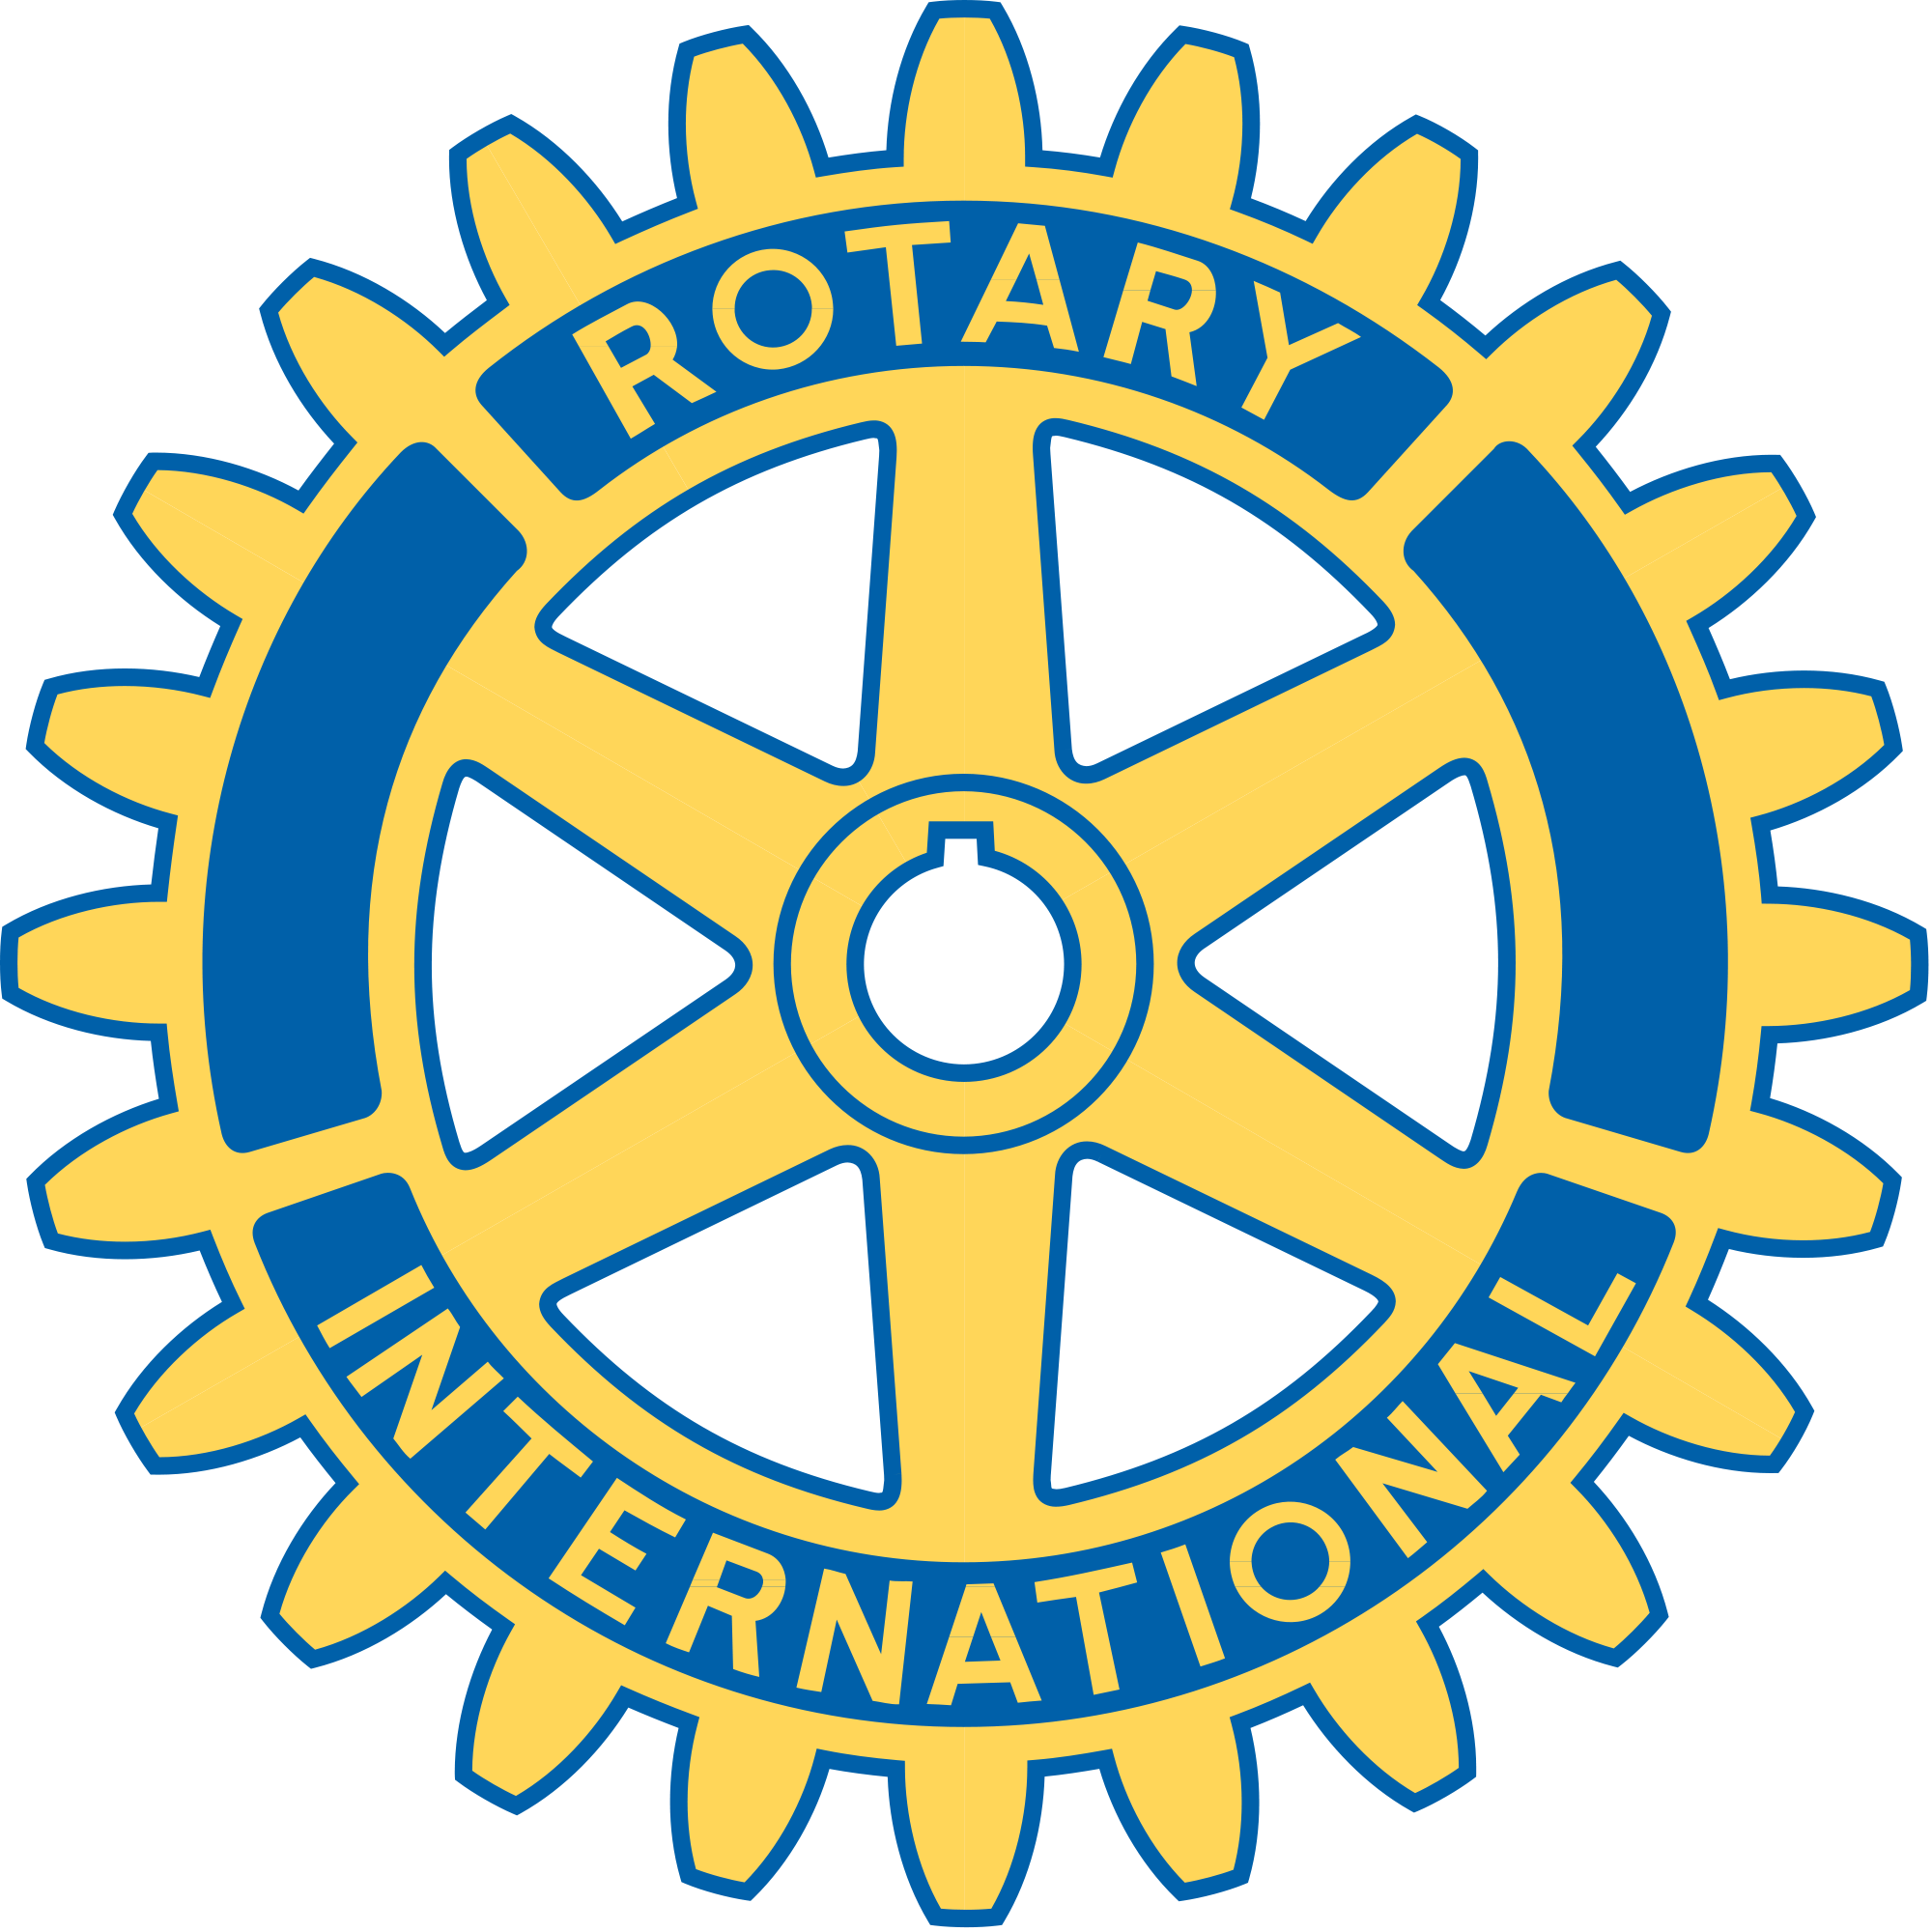 2000px-Rotary_international_emblem.png